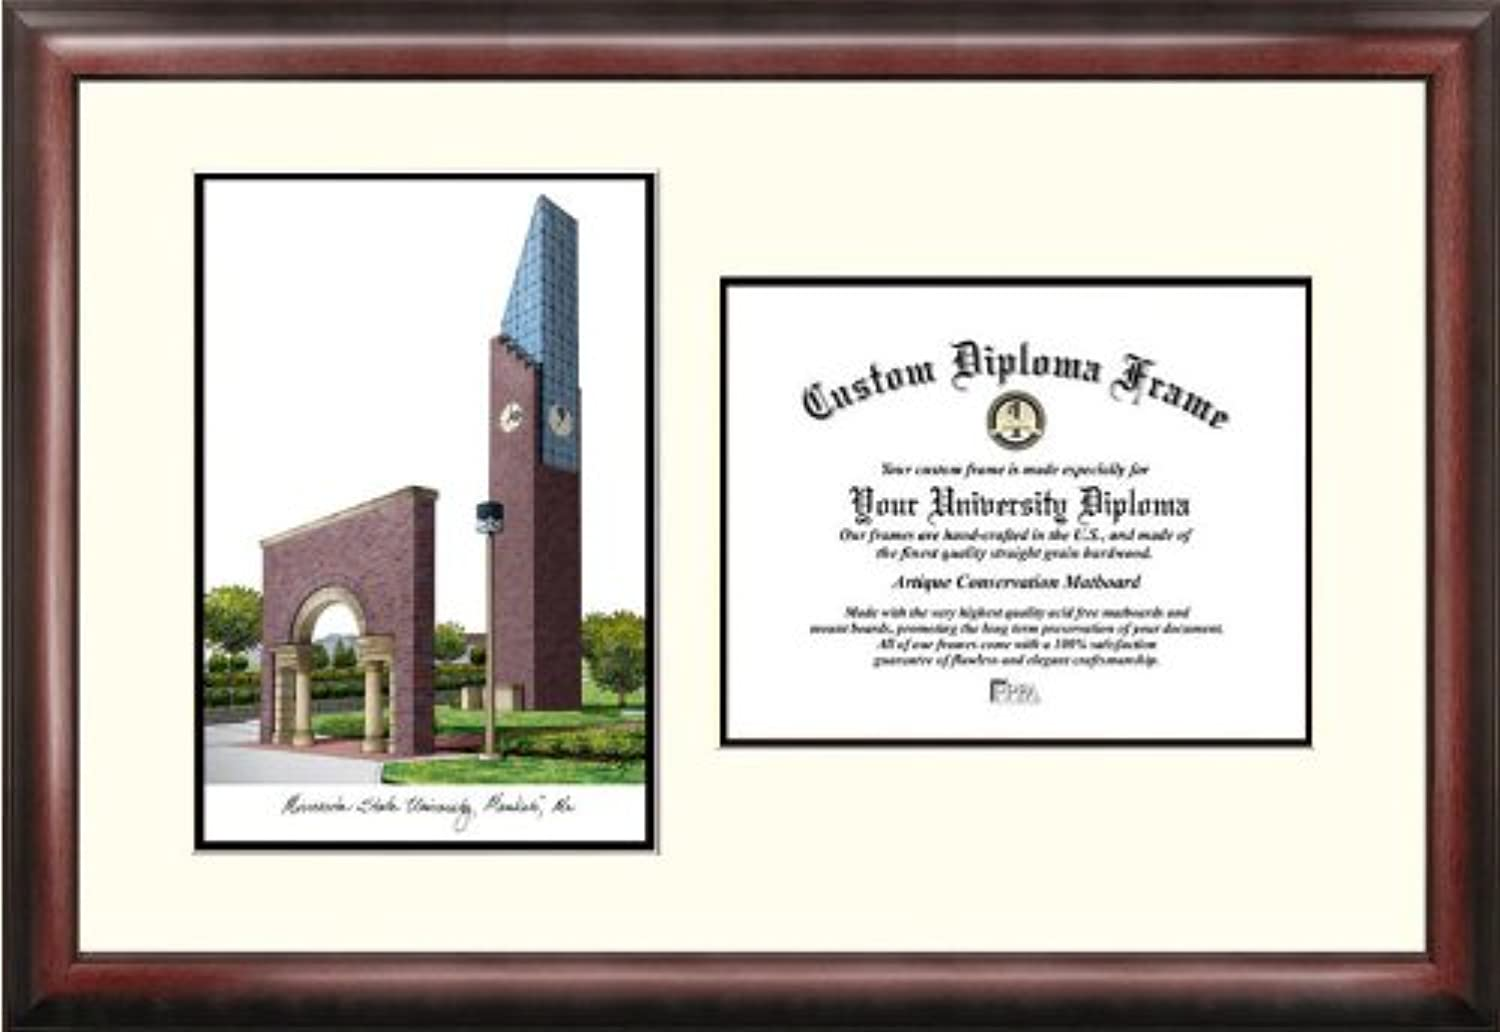 Campus Images  Minnesota State University Mankato  Scholar Diploma Frame, 8.5  x 11